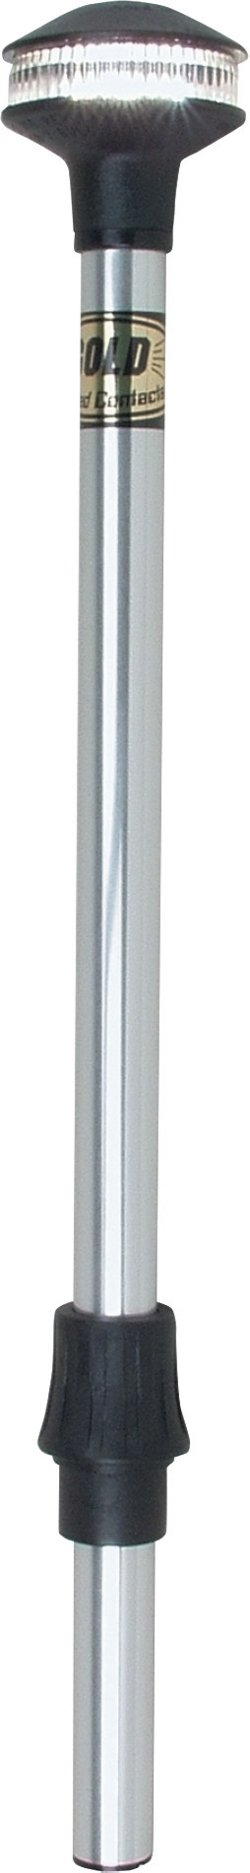 Perko Inland Reduced Glare 12V All-Round Replacement Pole Light